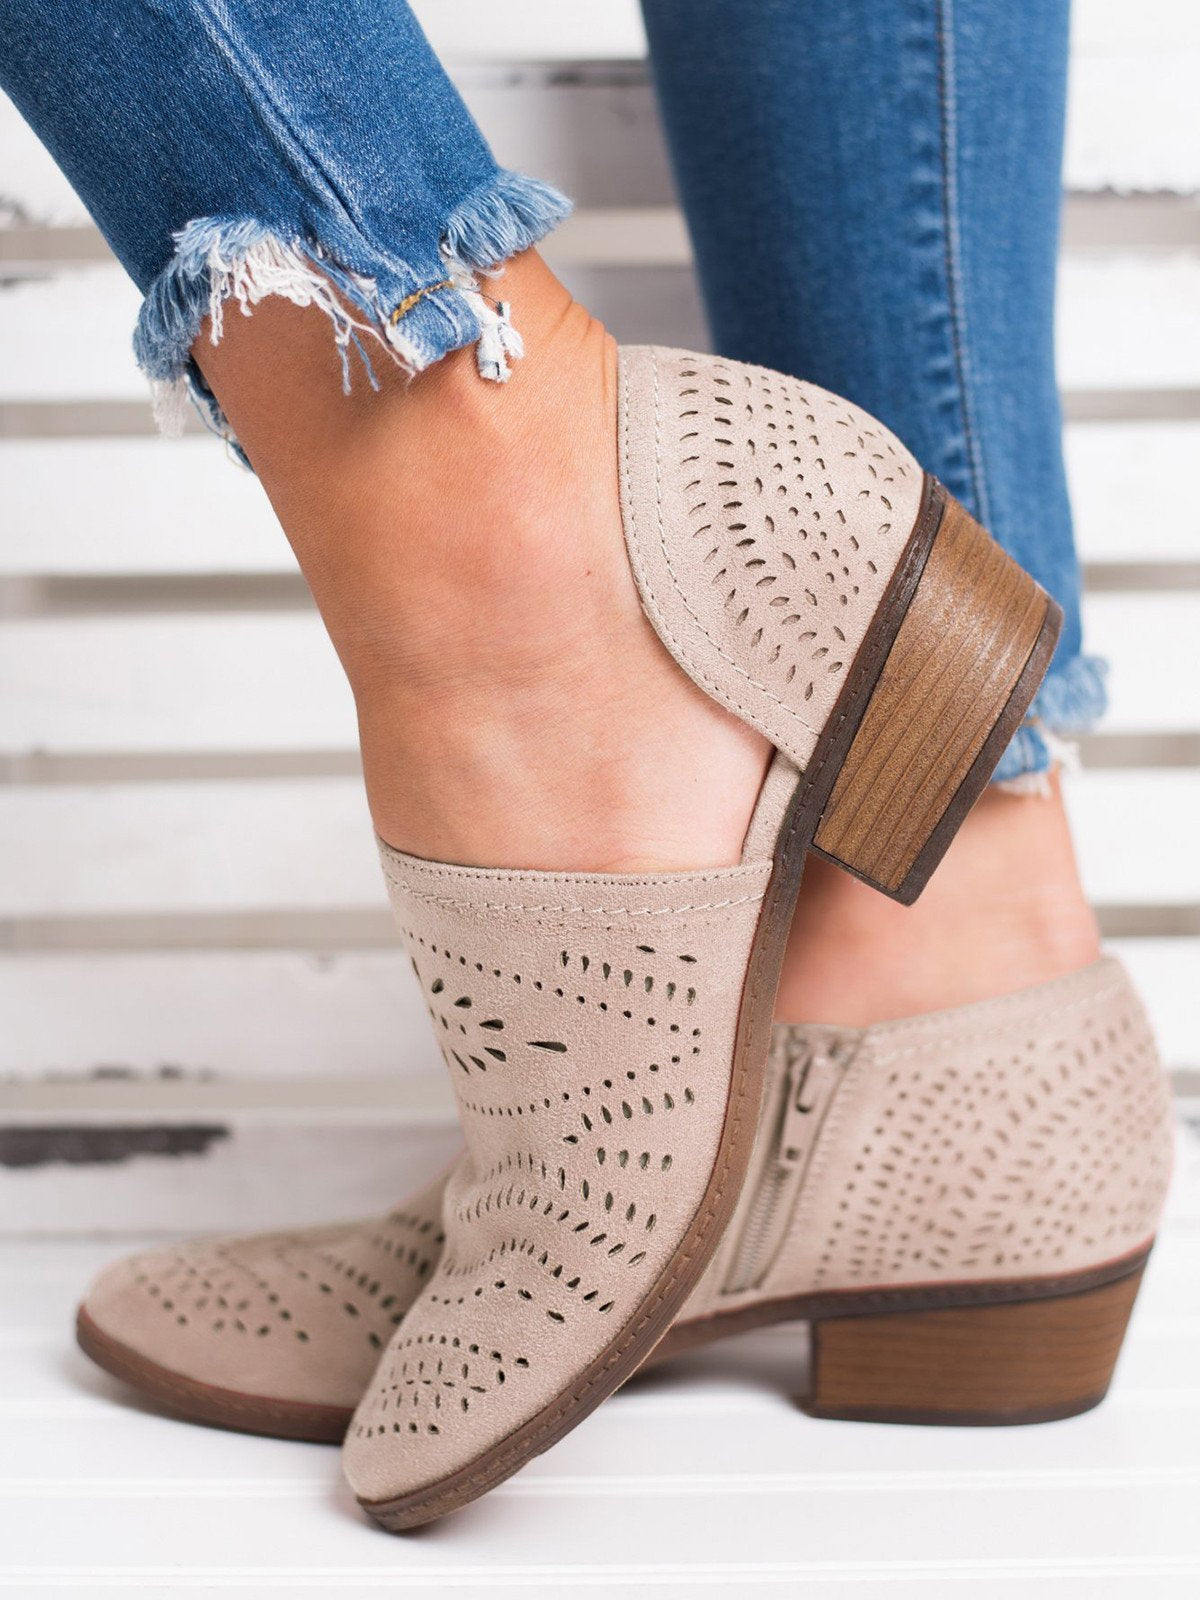 Hollow-out Low Heel Cutout Booties Faux Suede Zipper Ankle Boots herhershoes